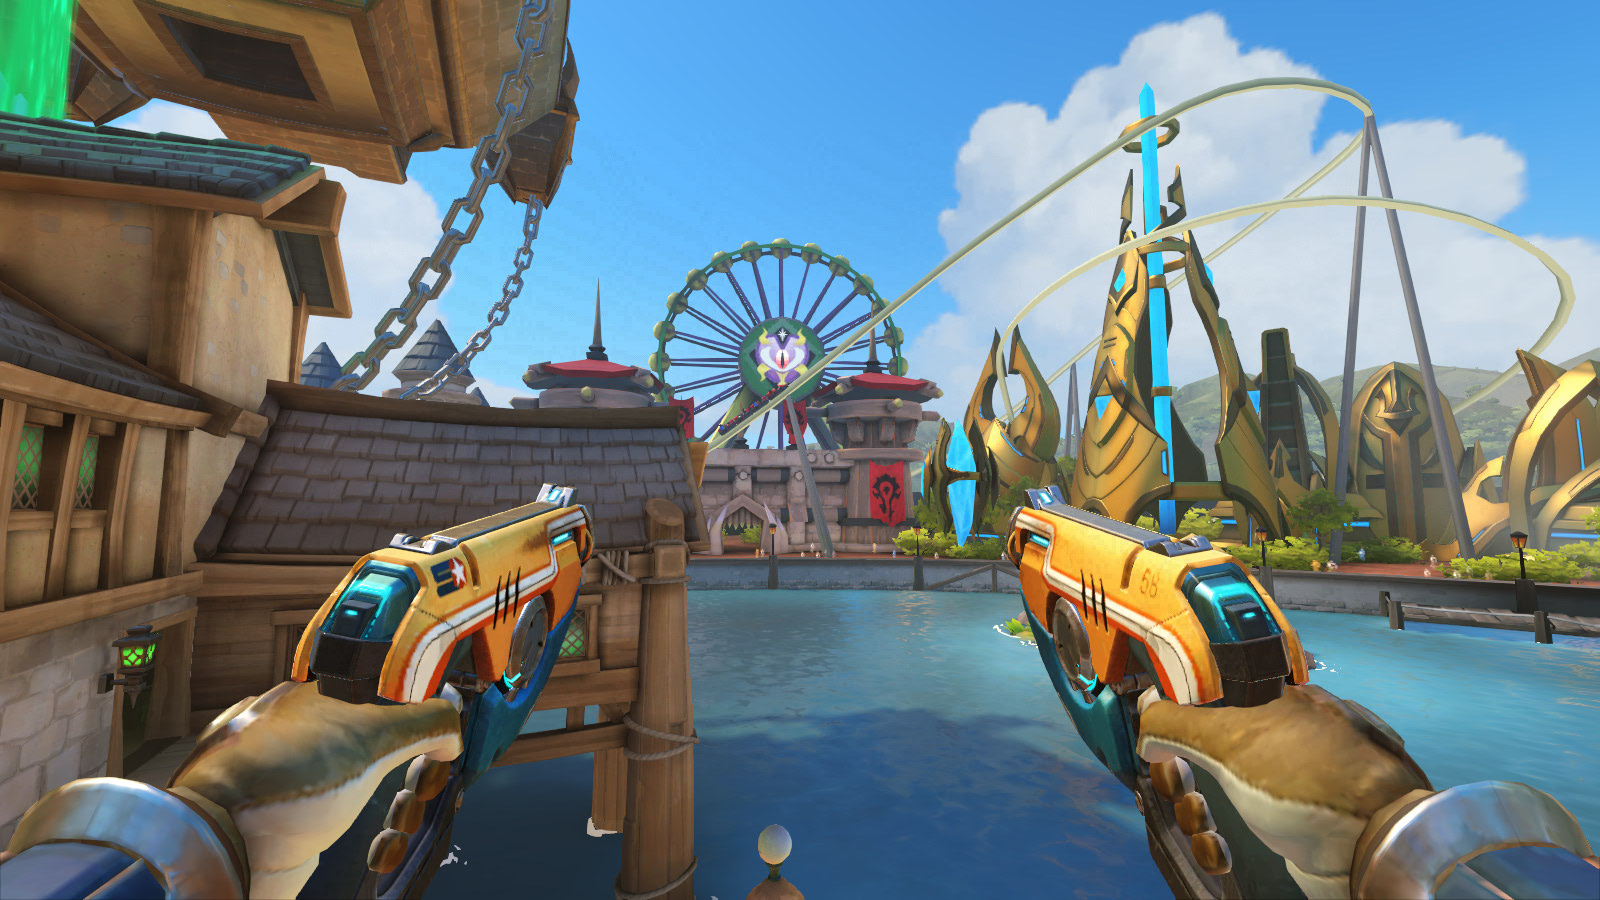 La grande roue de Sombrelune est visible sur la map Blizzard World